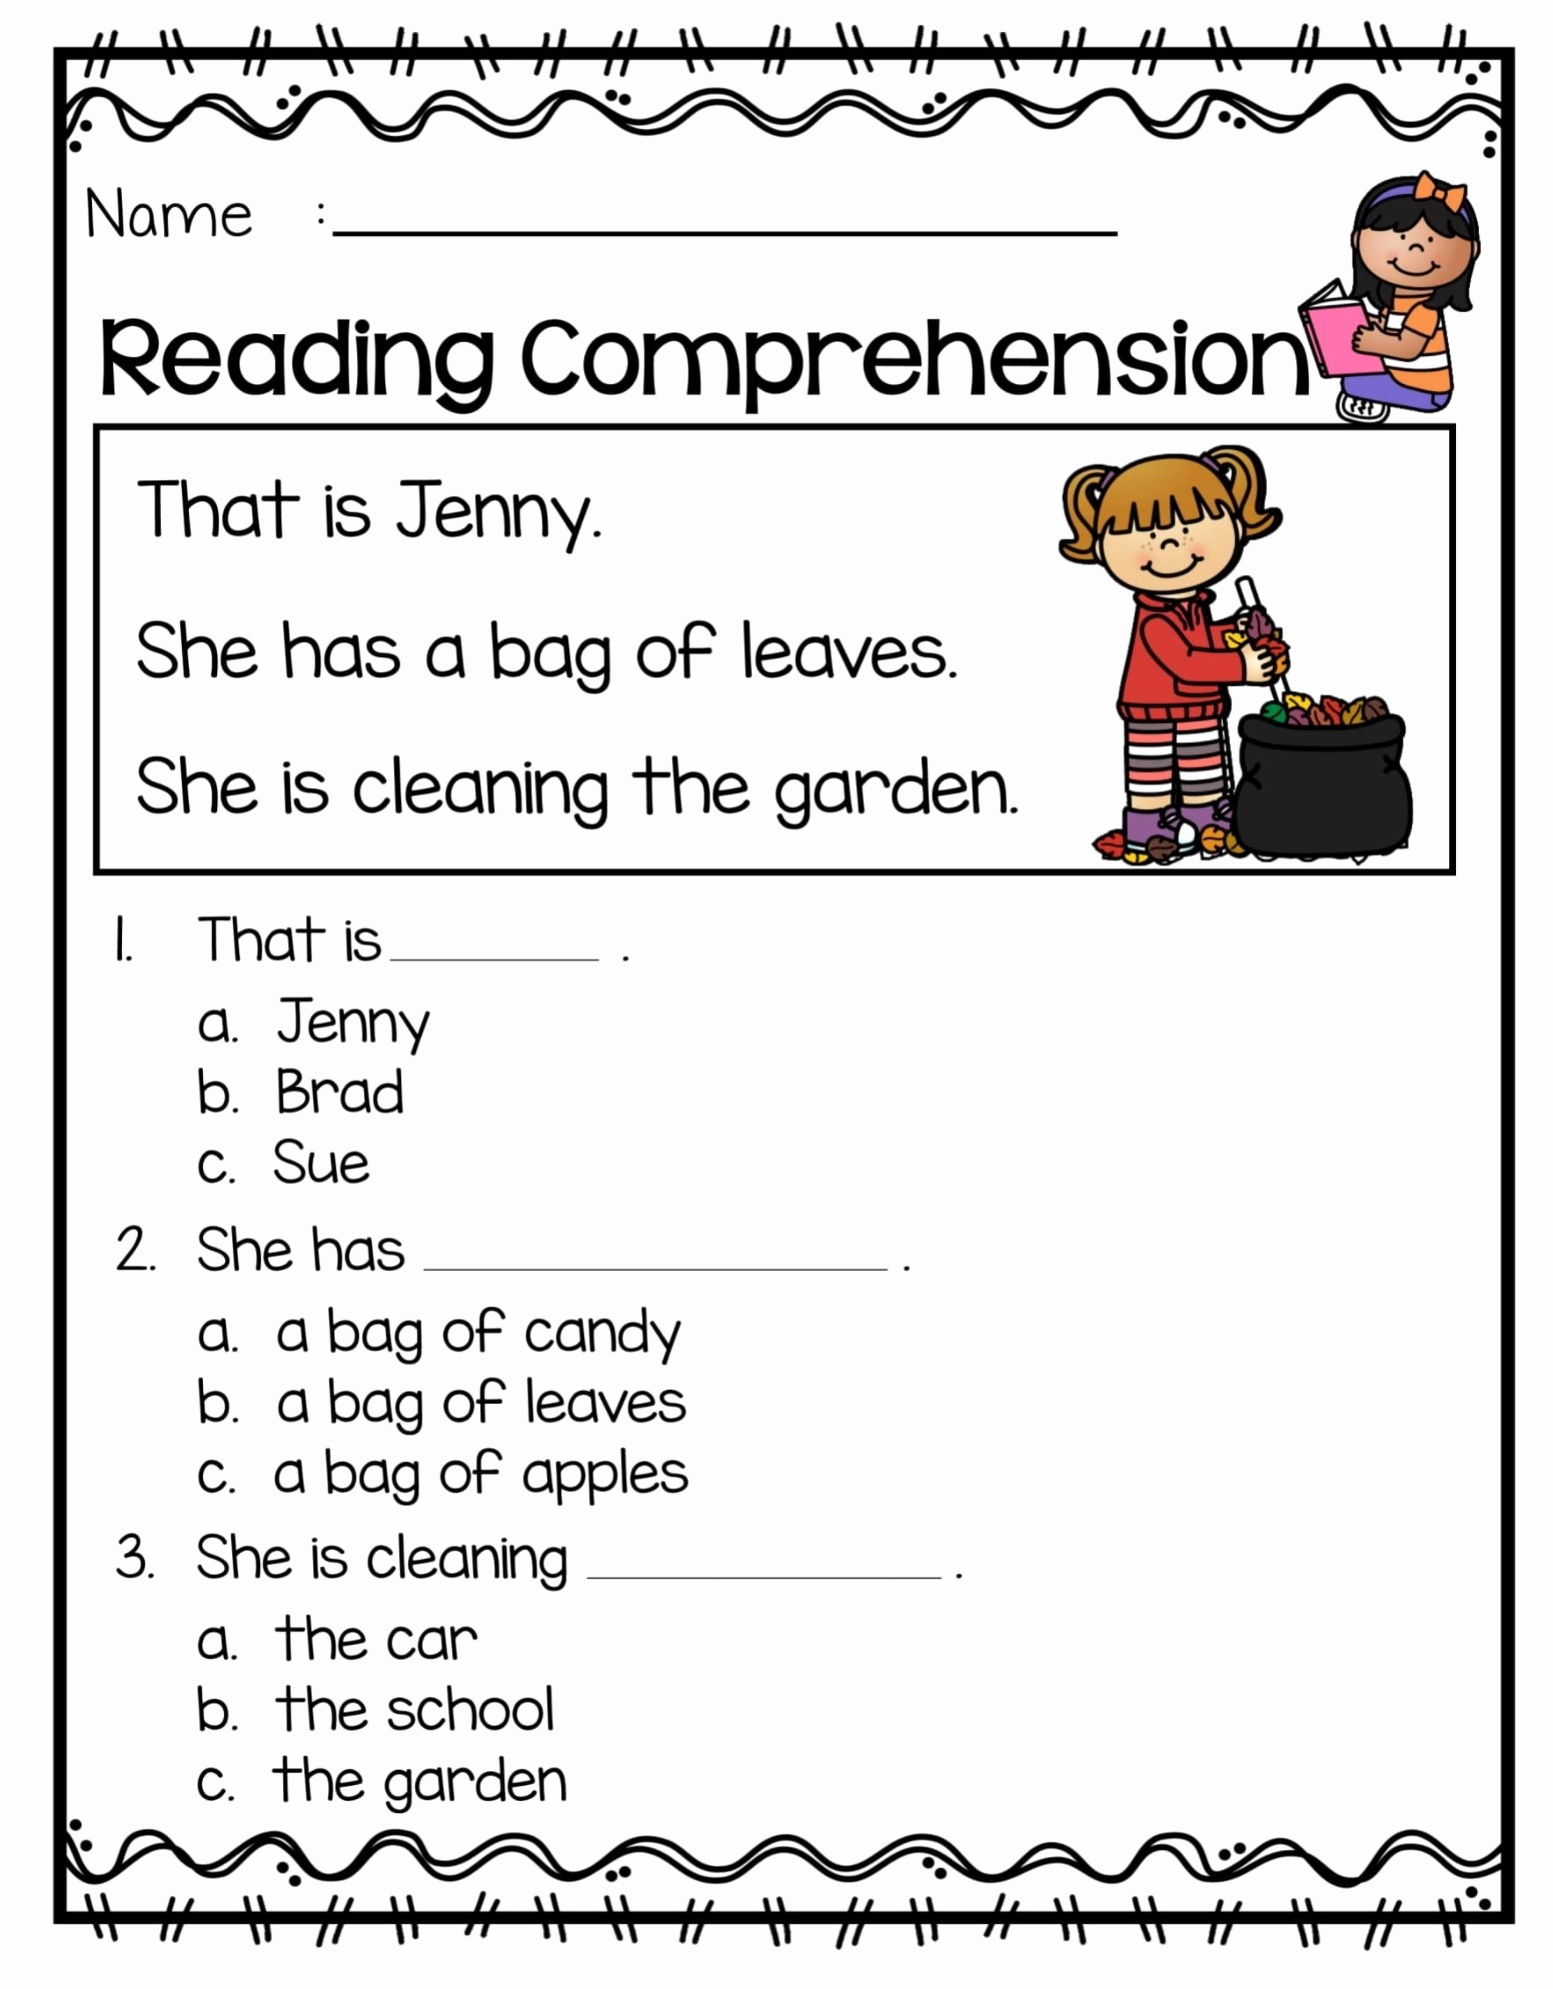 Worksheets for First Grade Writing Lovely 1st Grade Reading Prehension Worksheets Printable Pdf